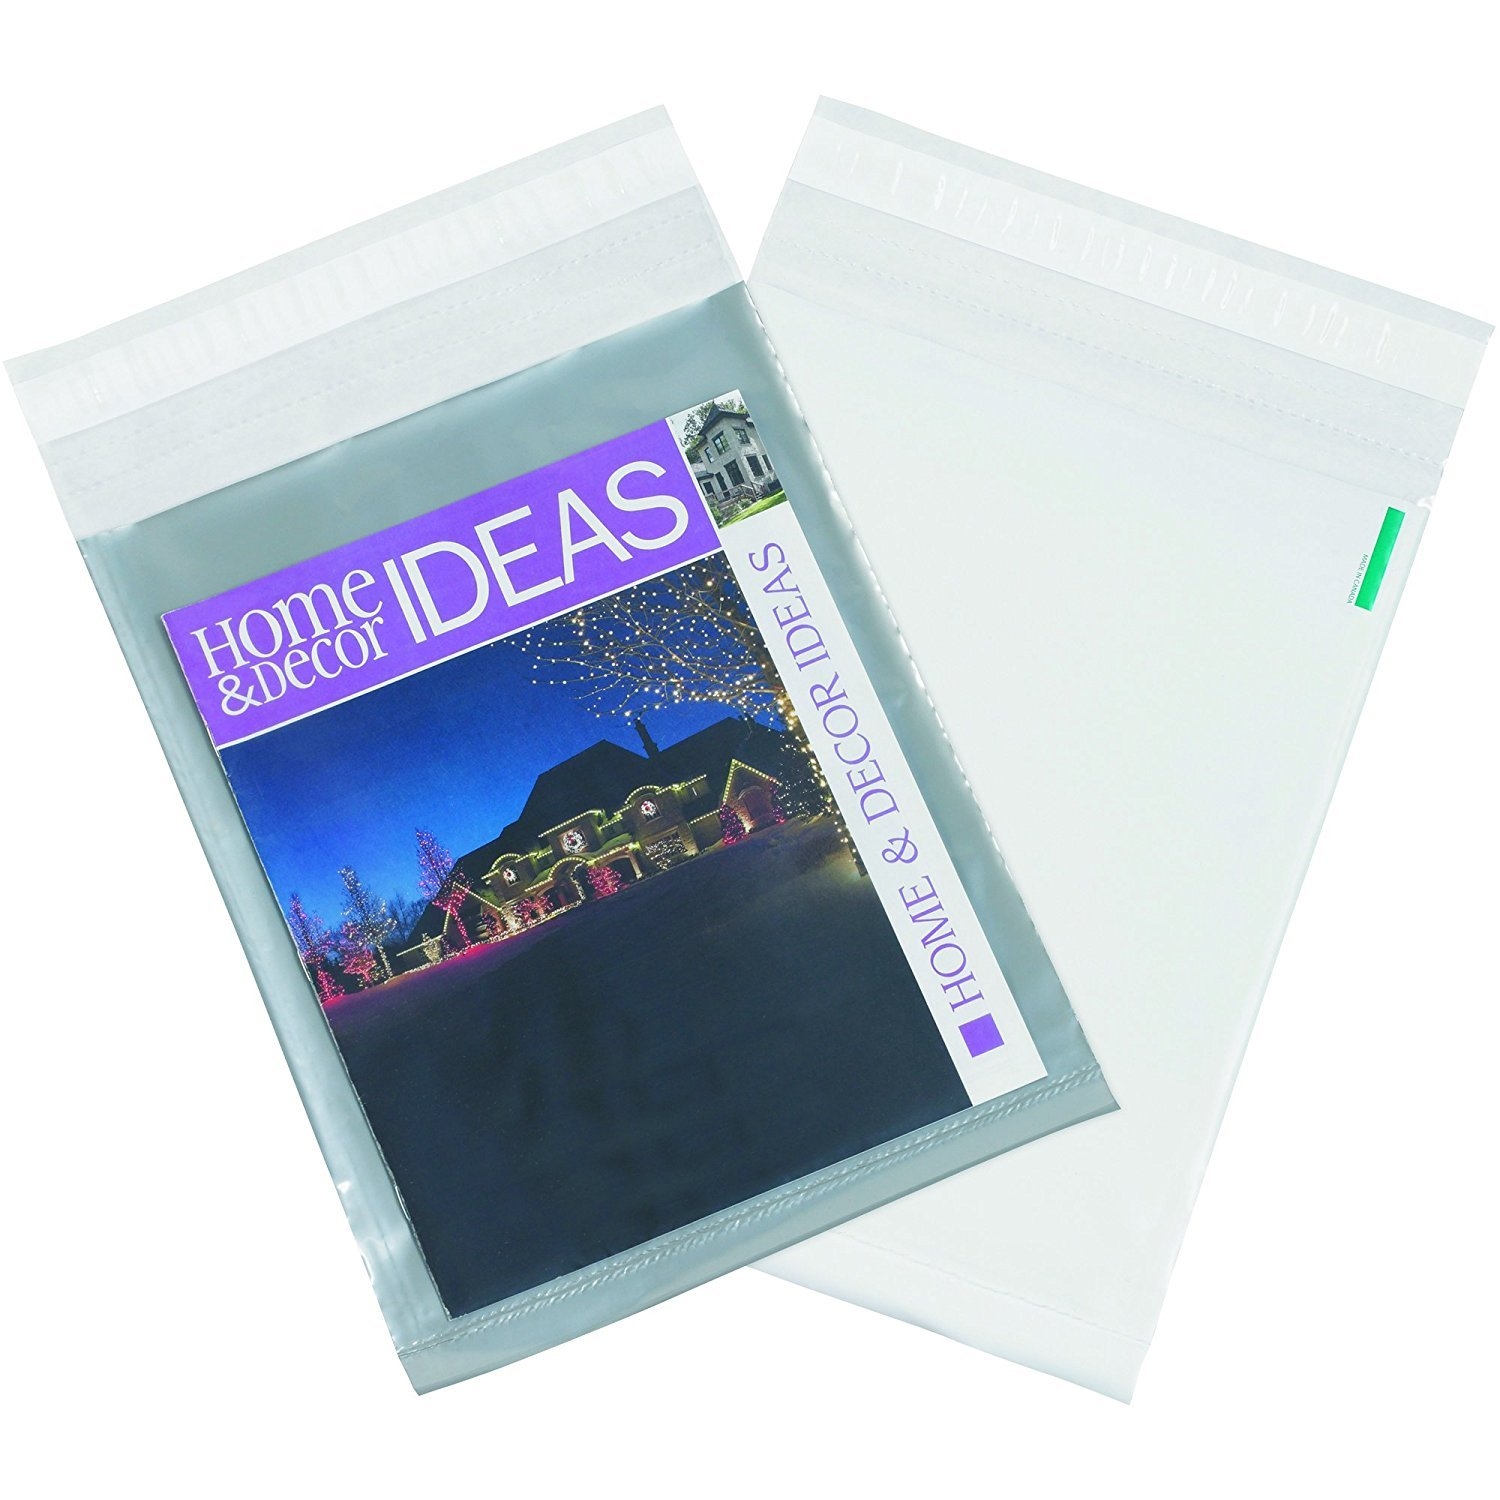 50 Count #3 9 x 12 Inch Oknuu Packaging Supplies Clear View Poly Mailers Self-Sealing Shipping Envelopes Plastic Mailing Bags 2.5 Mil Thickness 9x12 CPM9X12 (50 Pack)